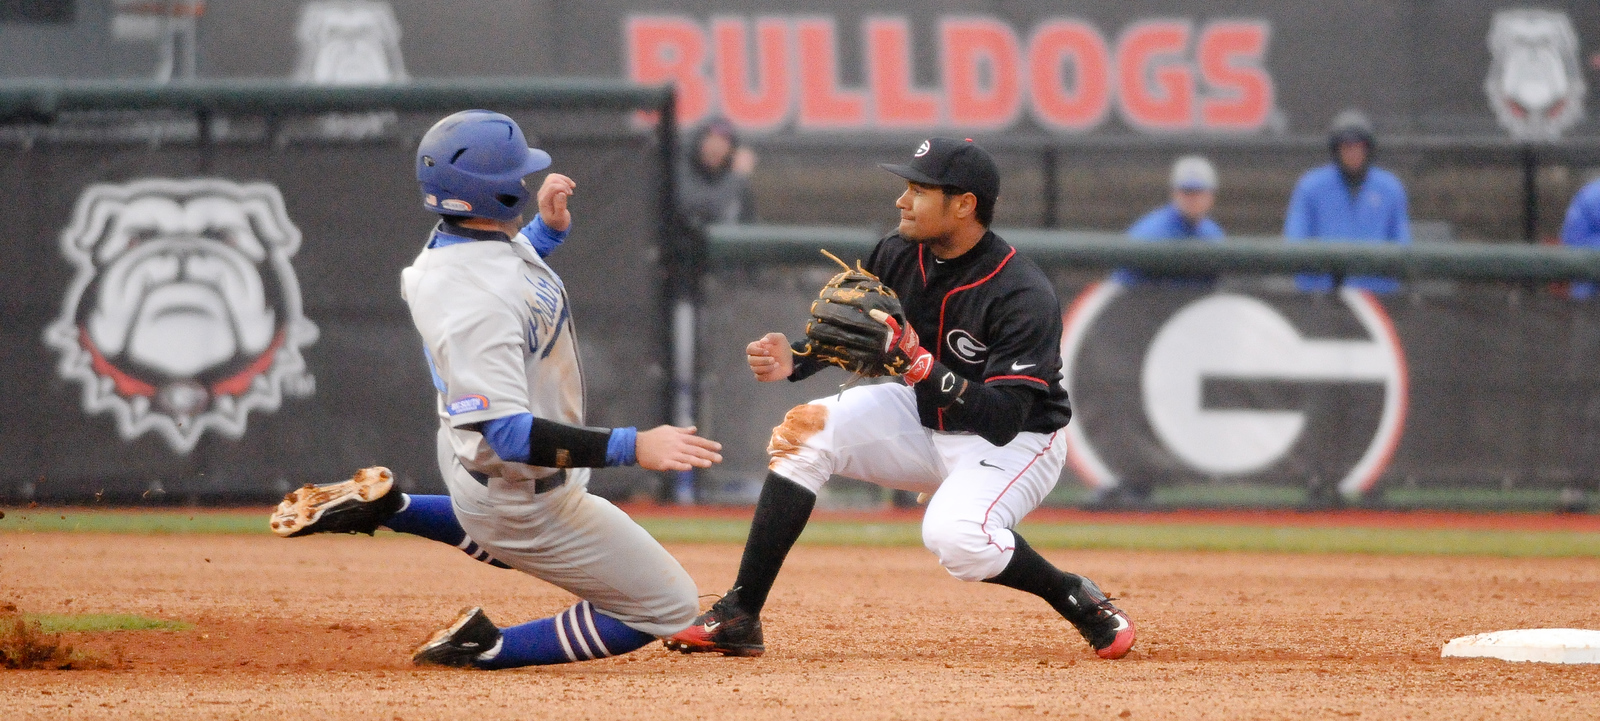 Georgia's Nick King (8) prepares to receive the ball at second base during a men's NCAA baseball game between the University of Georgia and Presbyterian College on Tuesday, February 24, 2015 in Athens, Ga. (Photo by Sean Taylor)